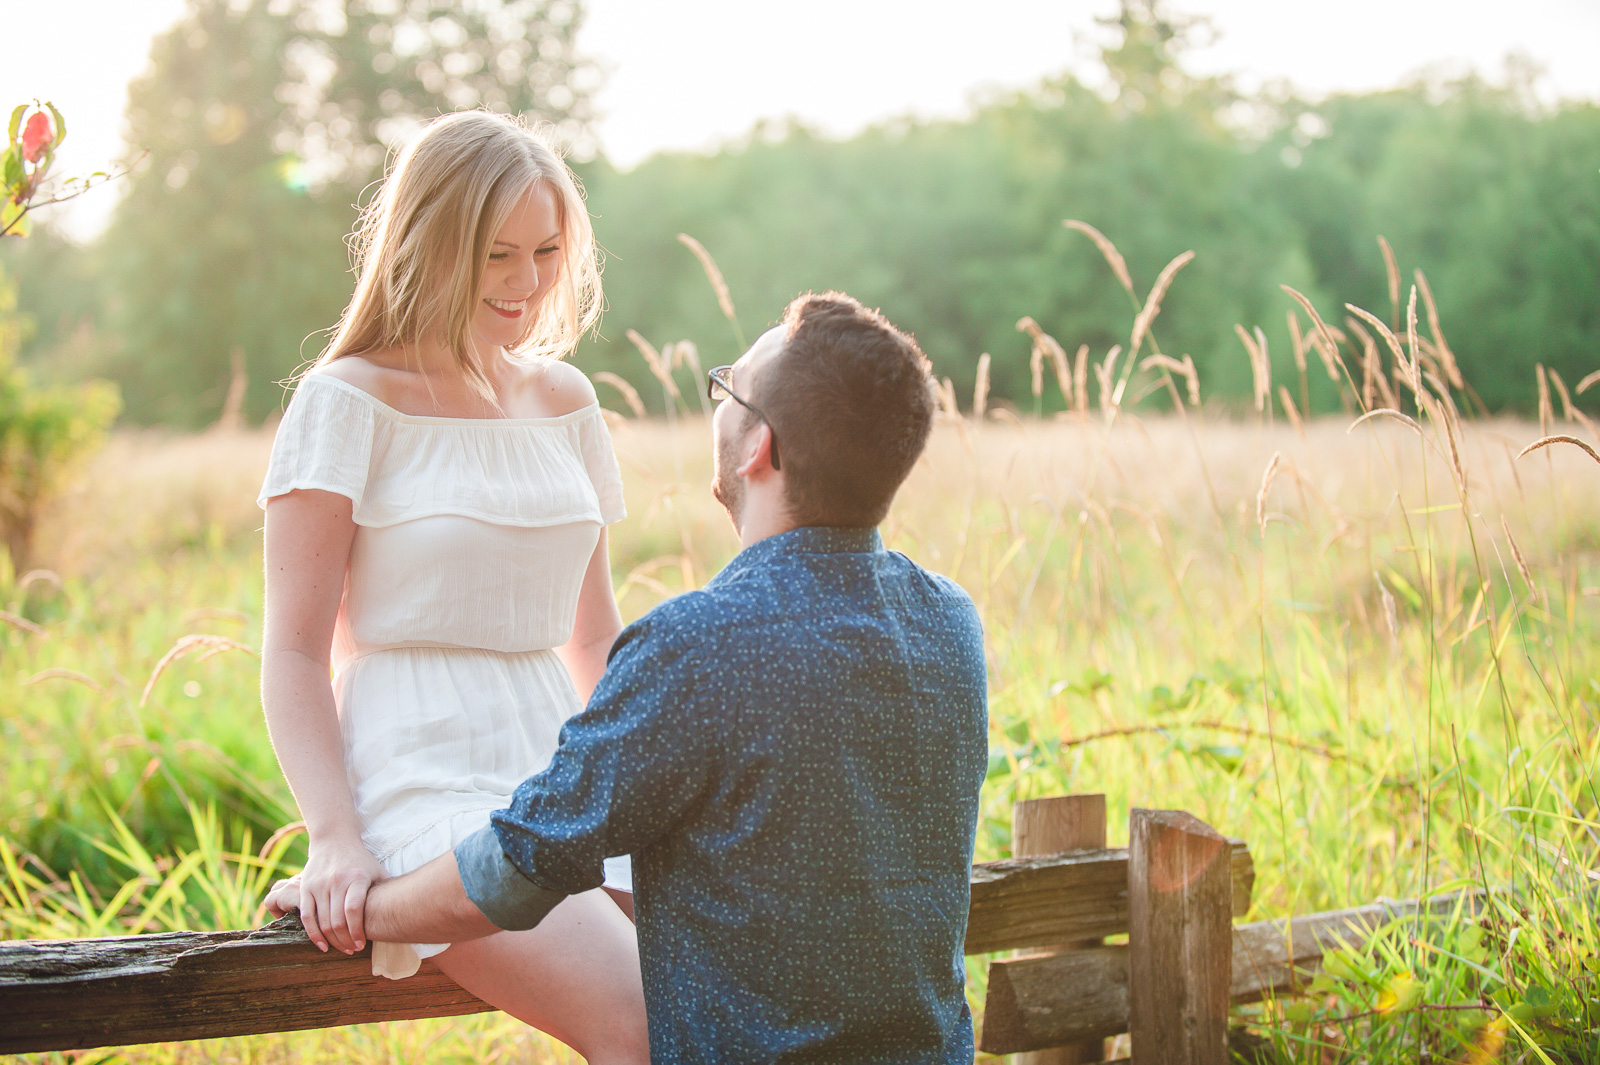 vancouver-island-wedding-photographers-campbell-valley-park-engagement-session-04.jpg